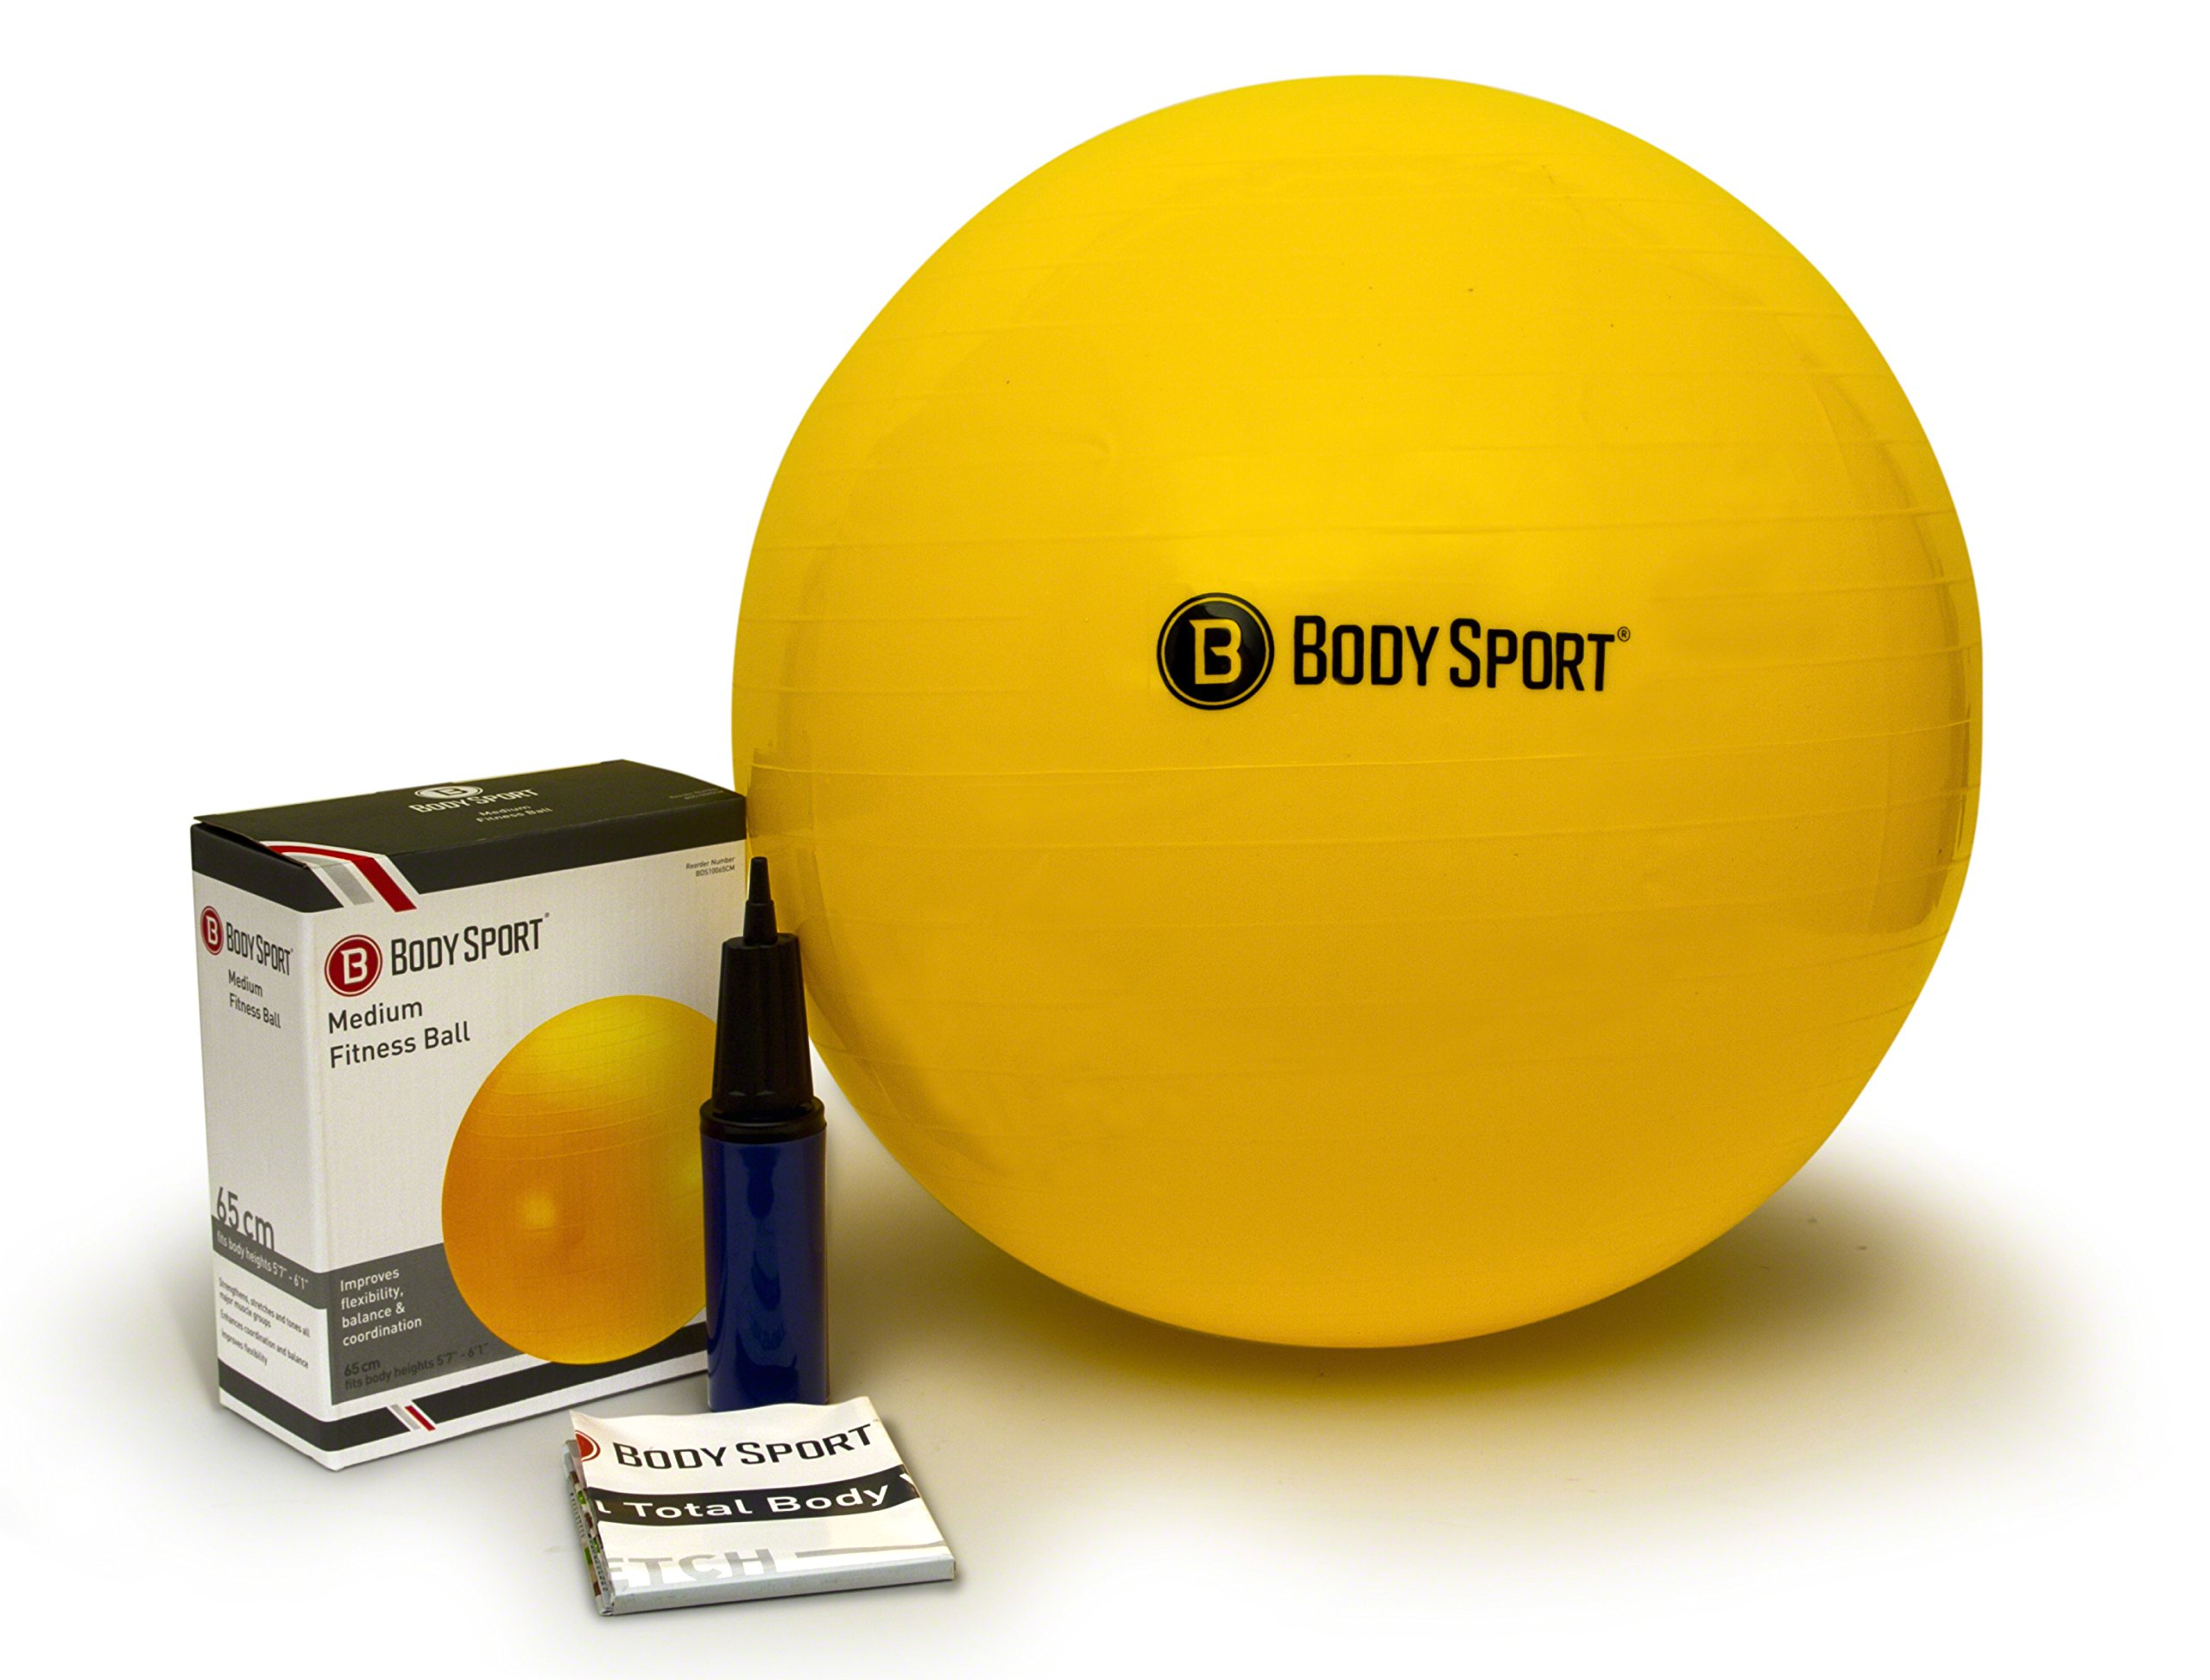 Body Sport Exercise Ball with Pump for Home, Gym, Balance, Stability, Pilates, Core Strength, Stretching, Yoga, Fitness Facilities, Desk Chairs - Yellow 65cm by Body Sport (Image #1)